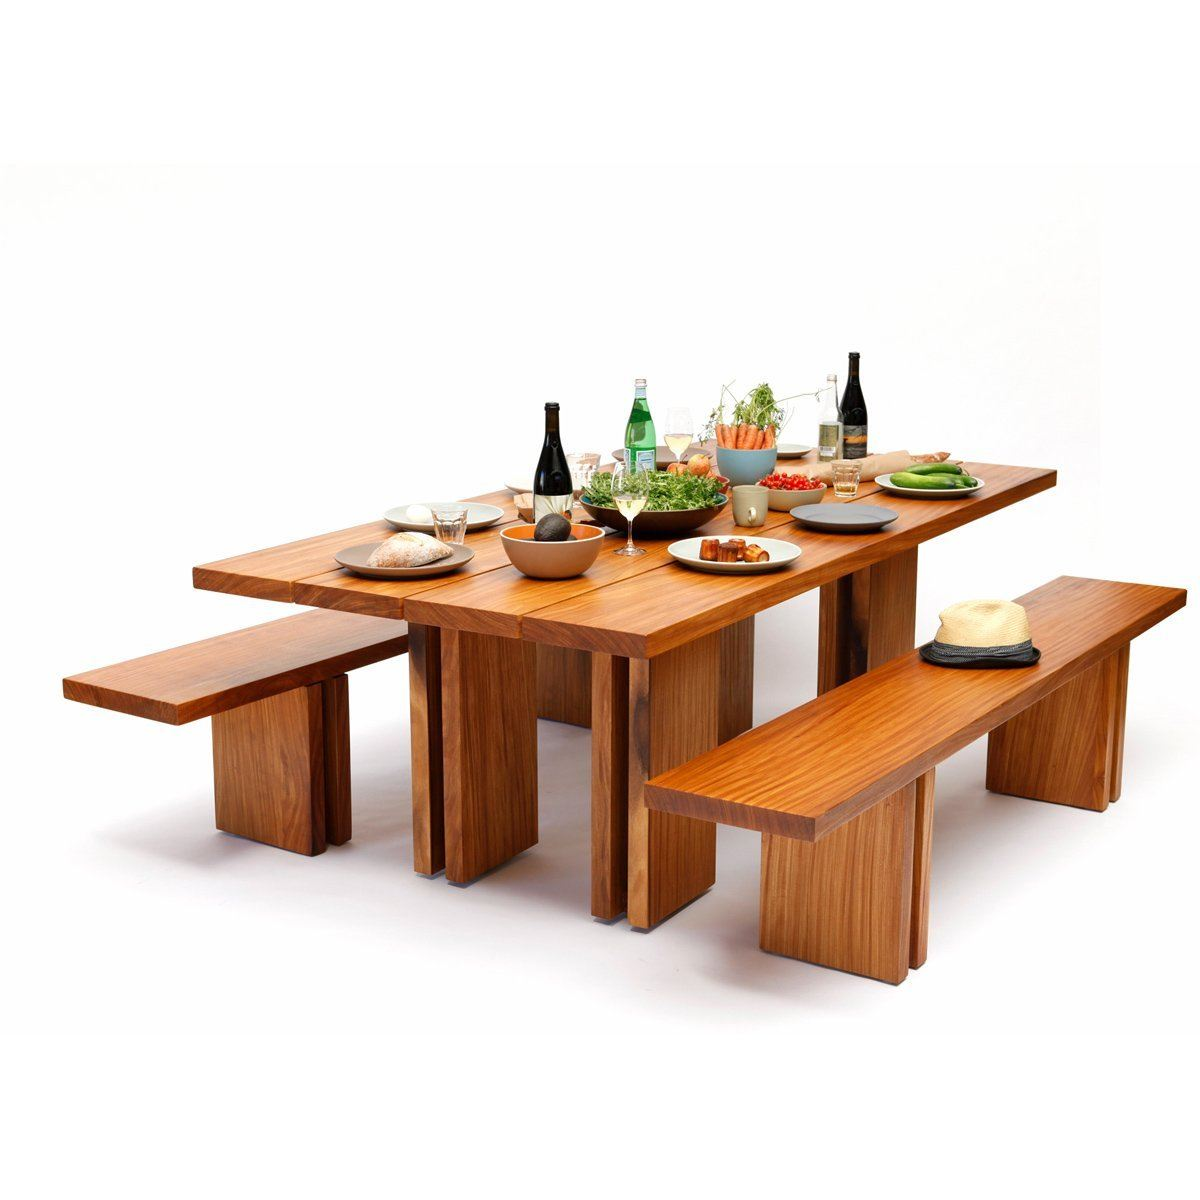 ARTLESS Occidental Dining Table 72""